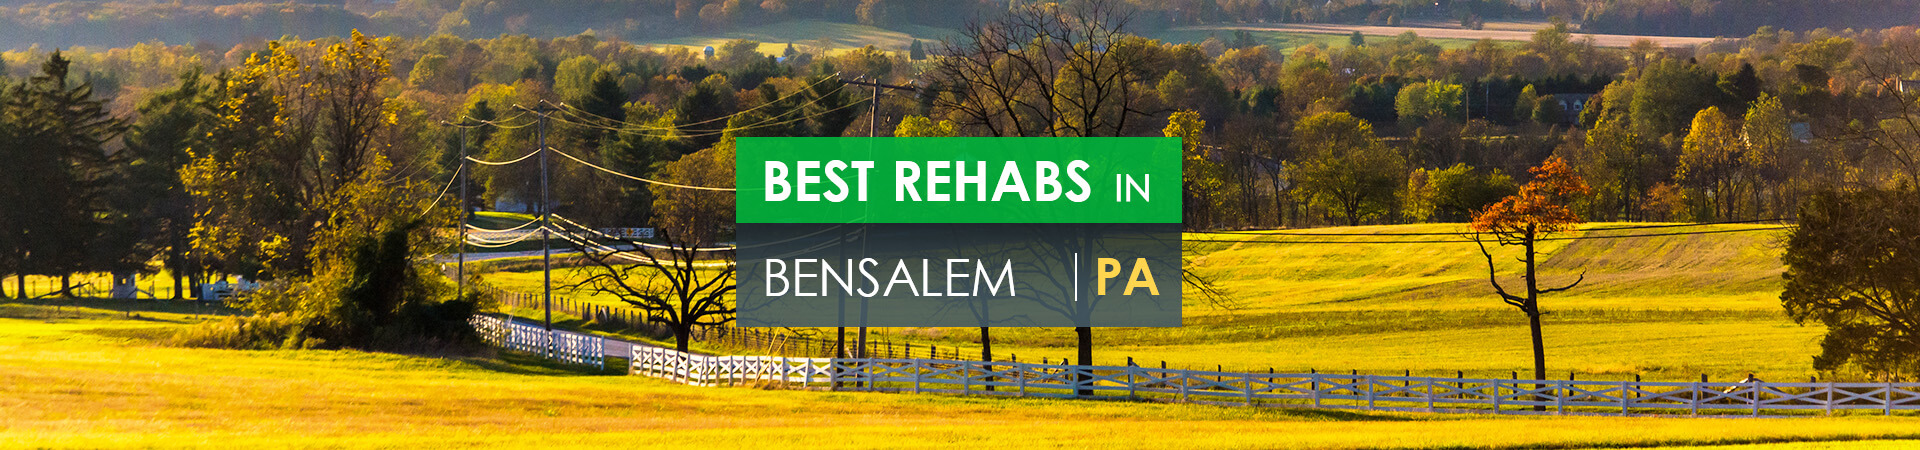 Best rehabs in Bensalem, PA